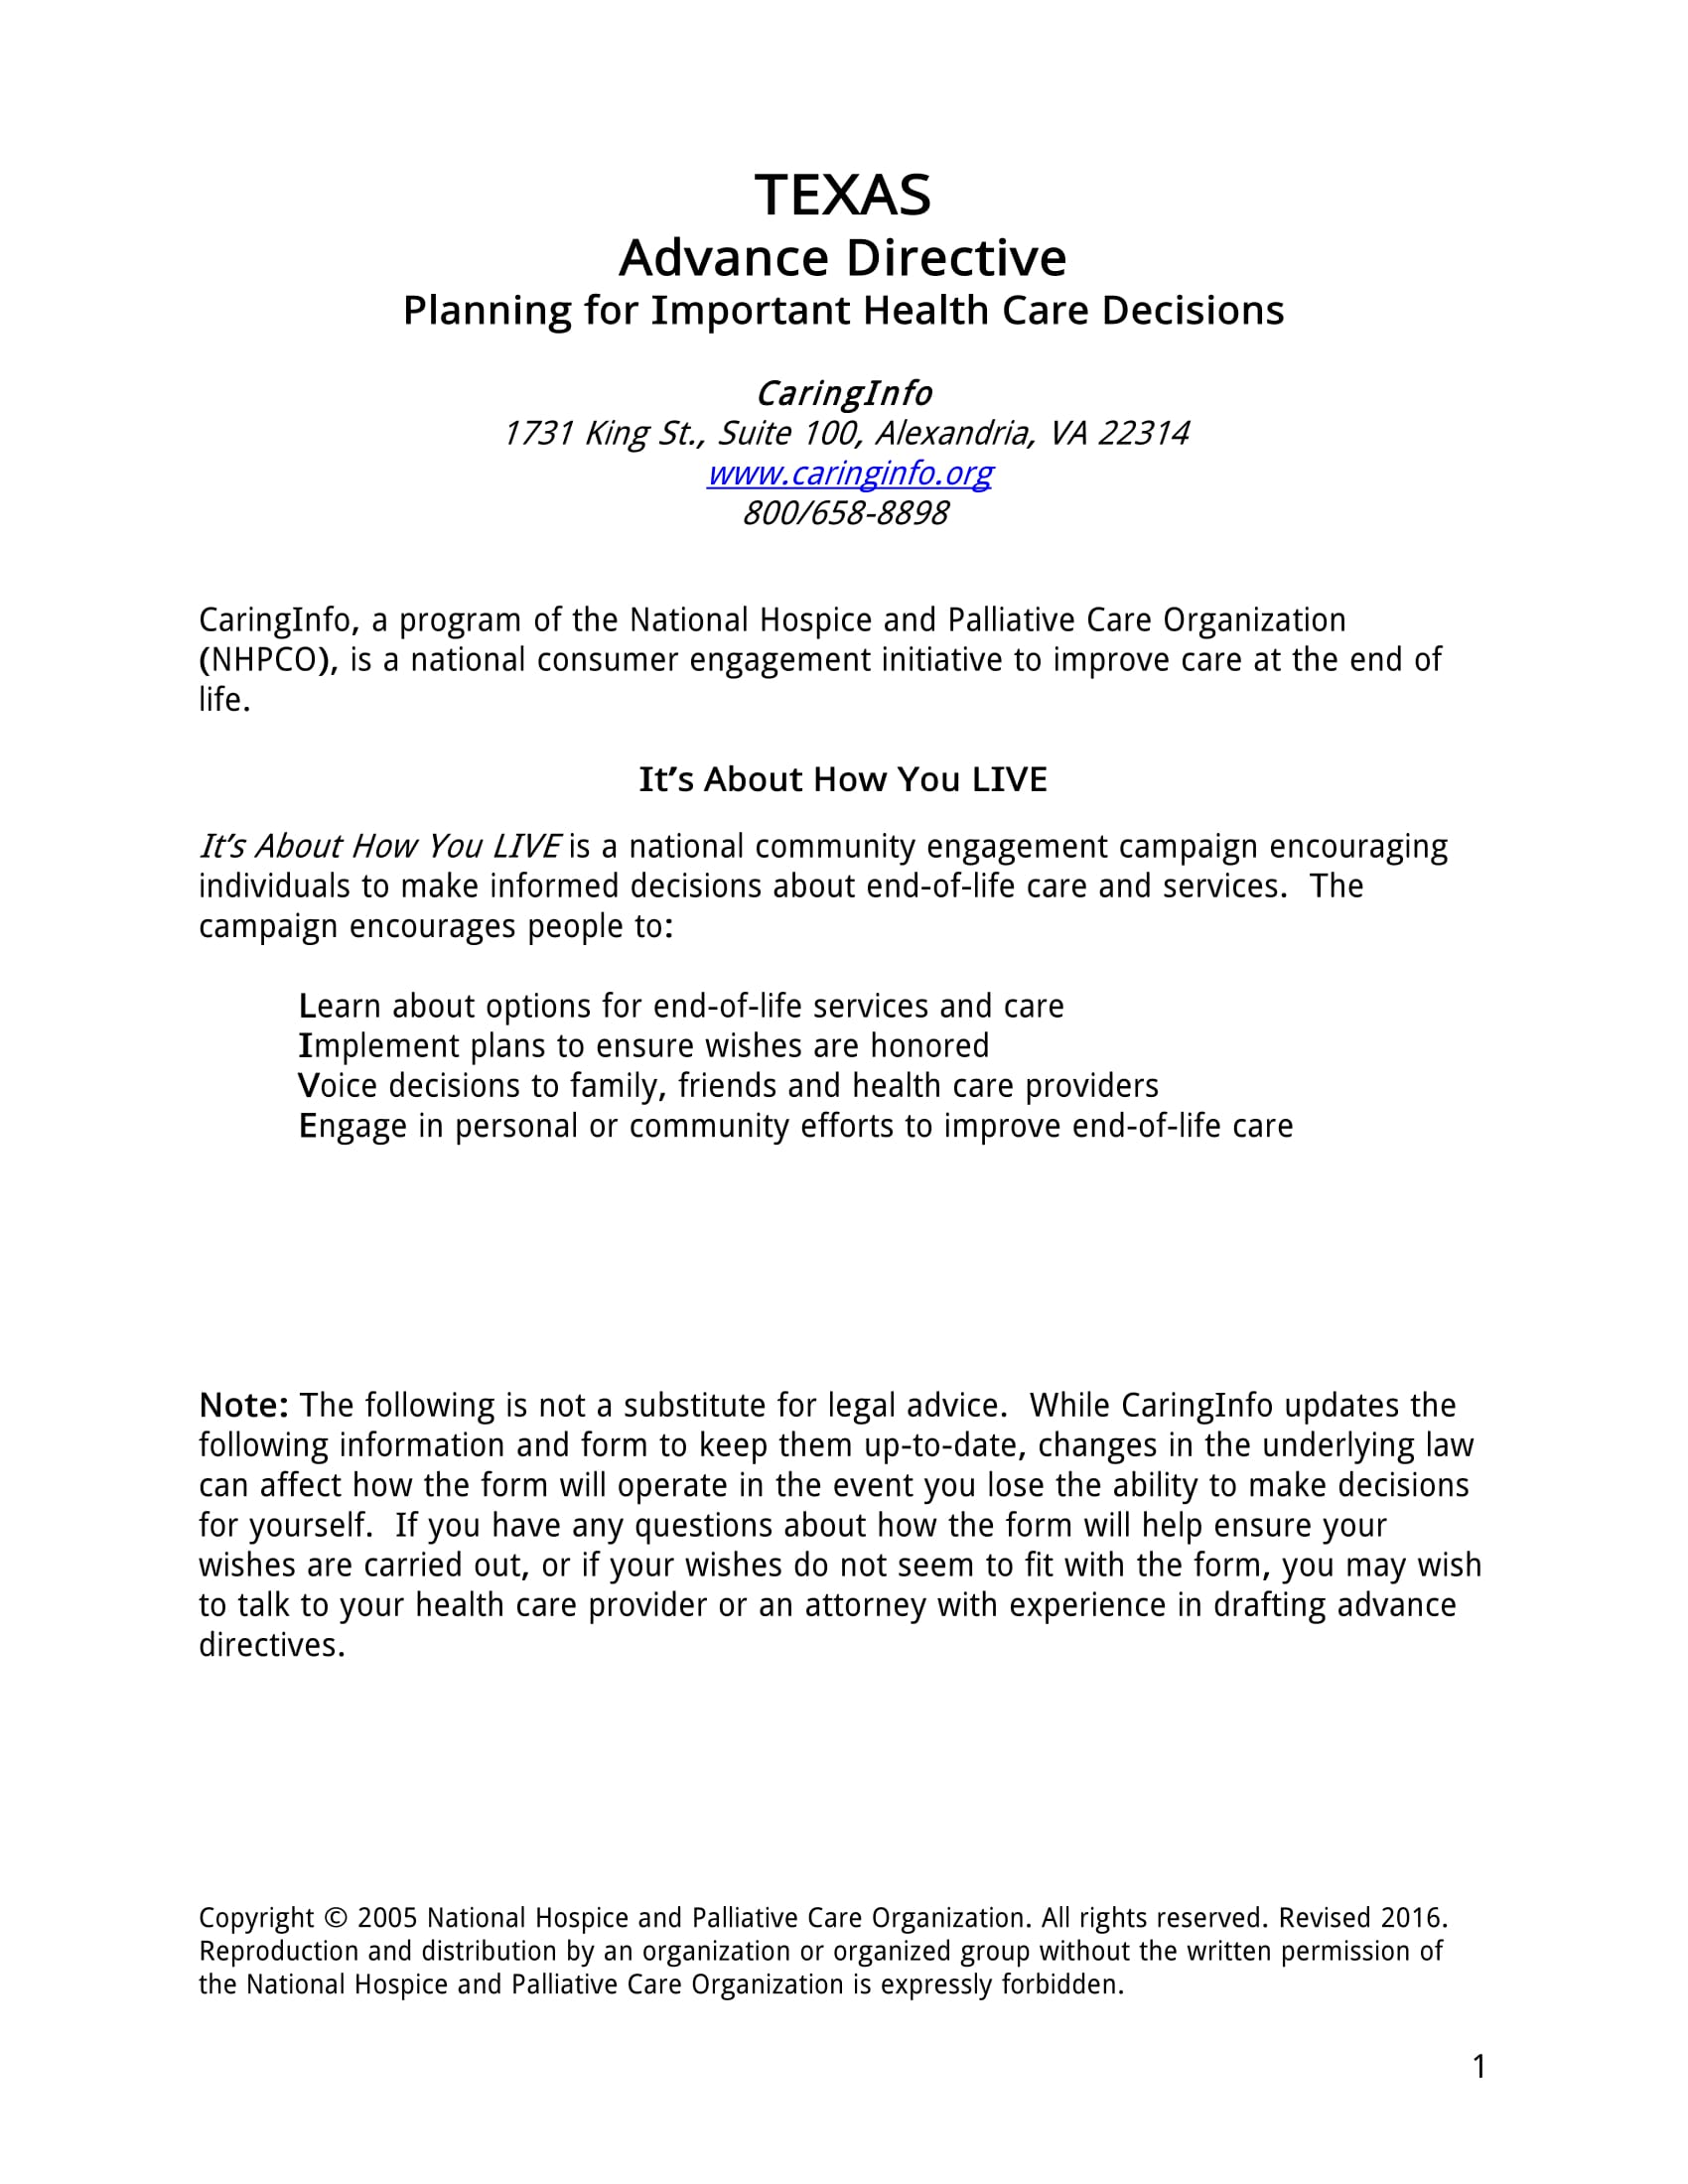 advance health care directive blank form